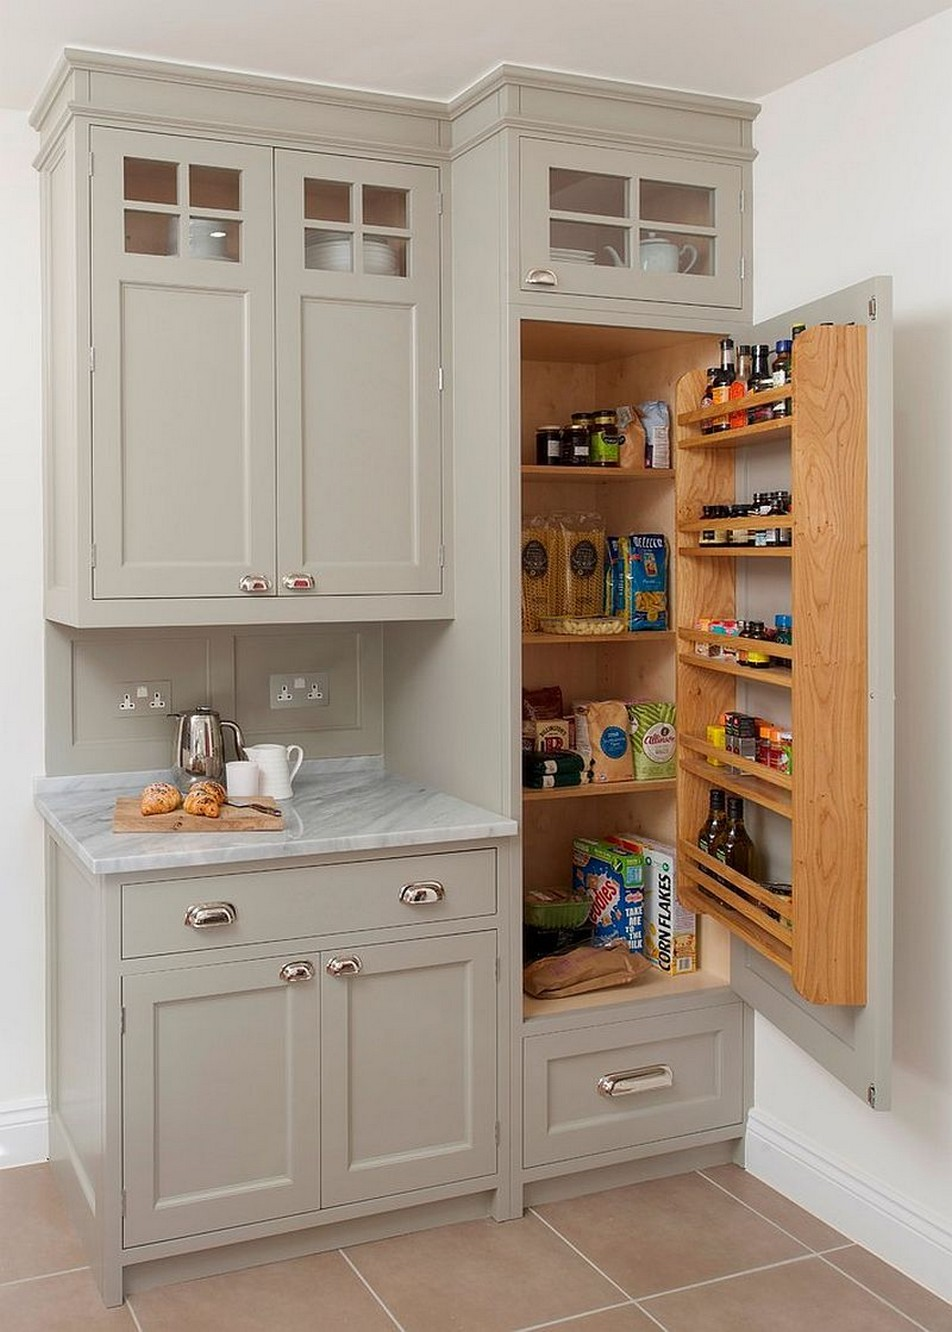 71 Painted Kitchen Cabinets Ideas For Home Decor 45